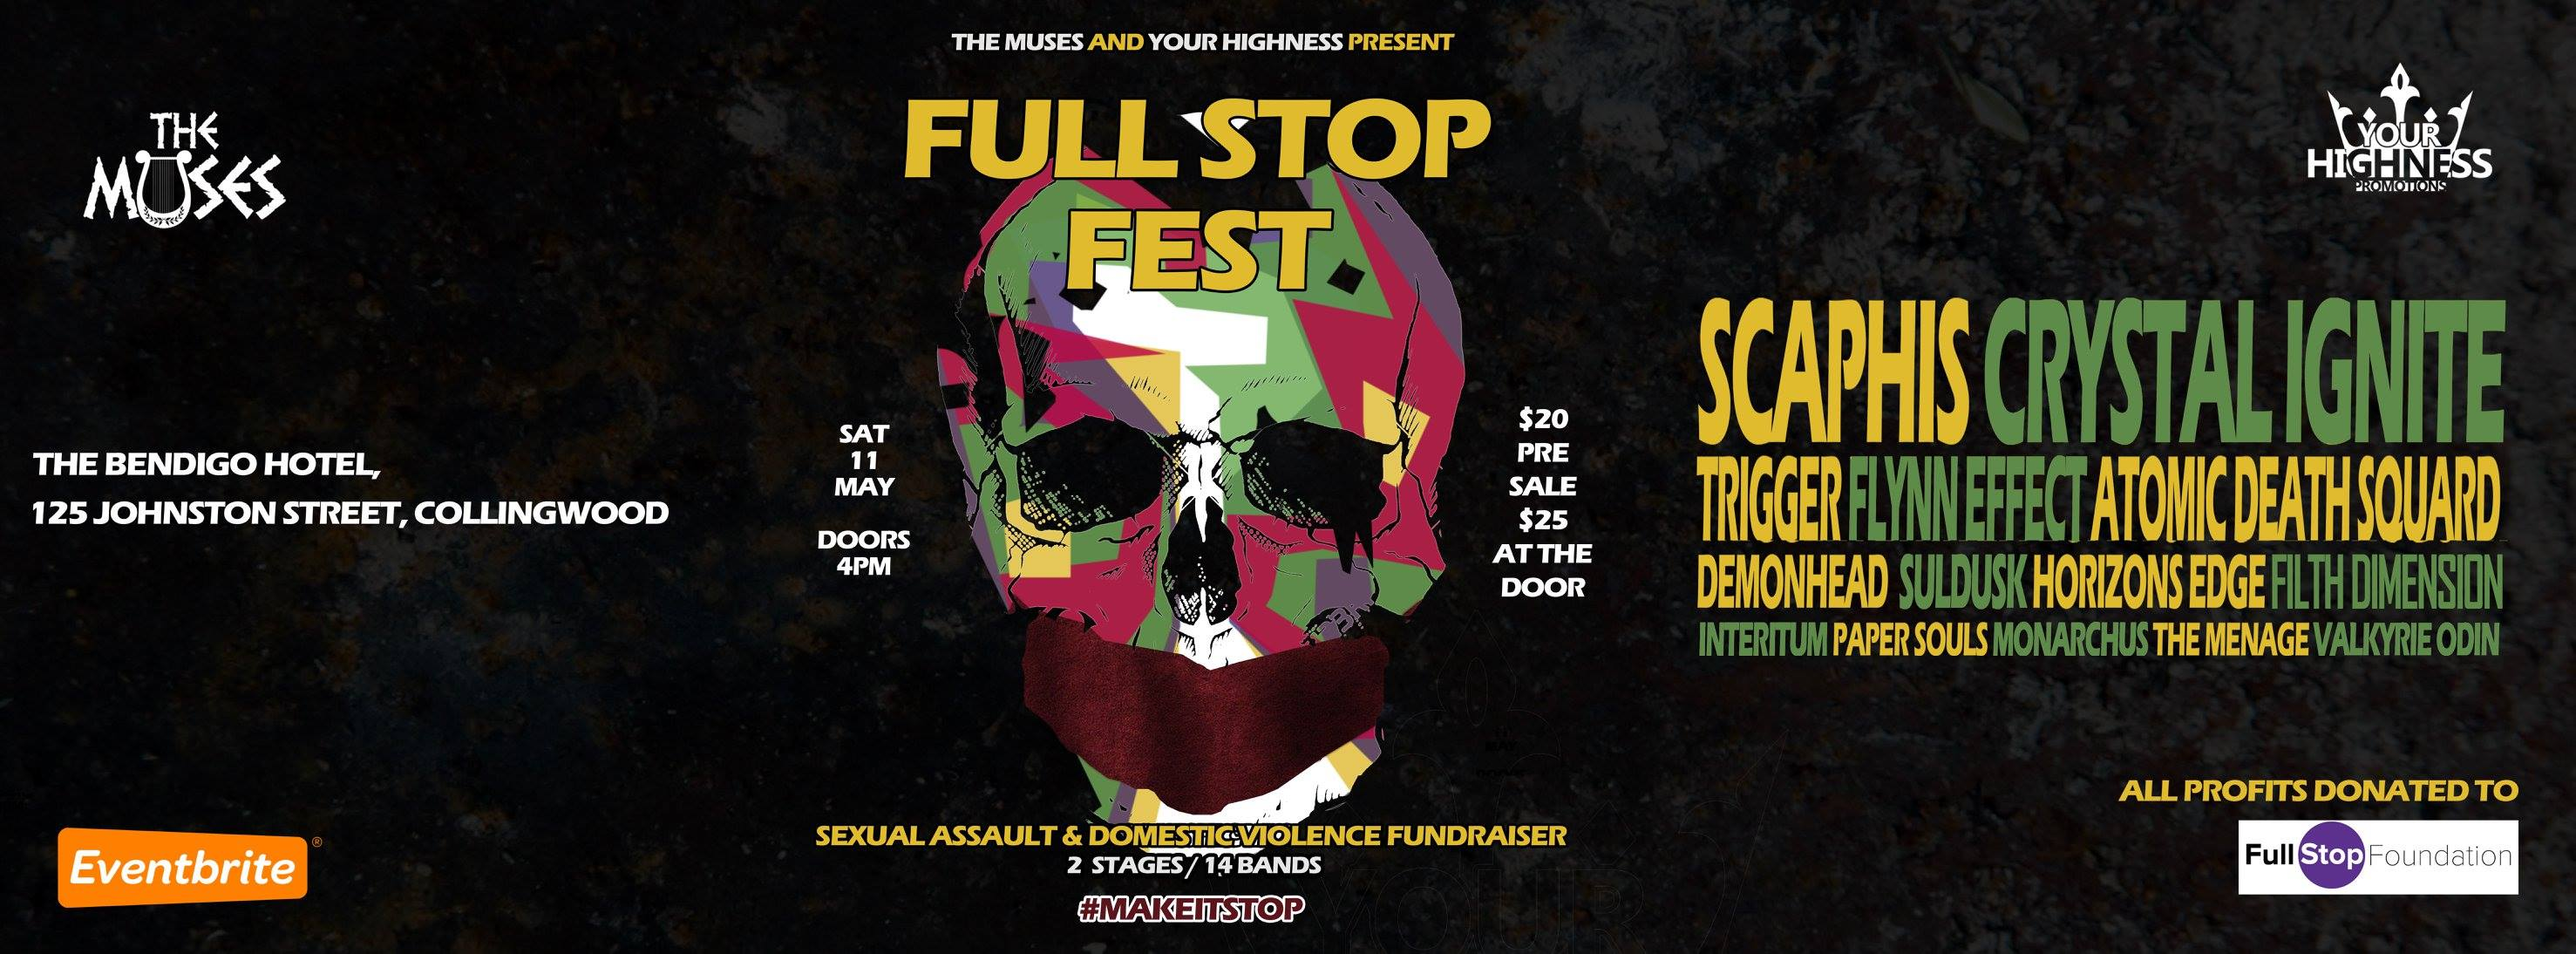 Saturday, May 11 BENDIGO HOTEL, COLLINGWOOD Stopping Sexual Assault & Domestic Violence, Full Stop